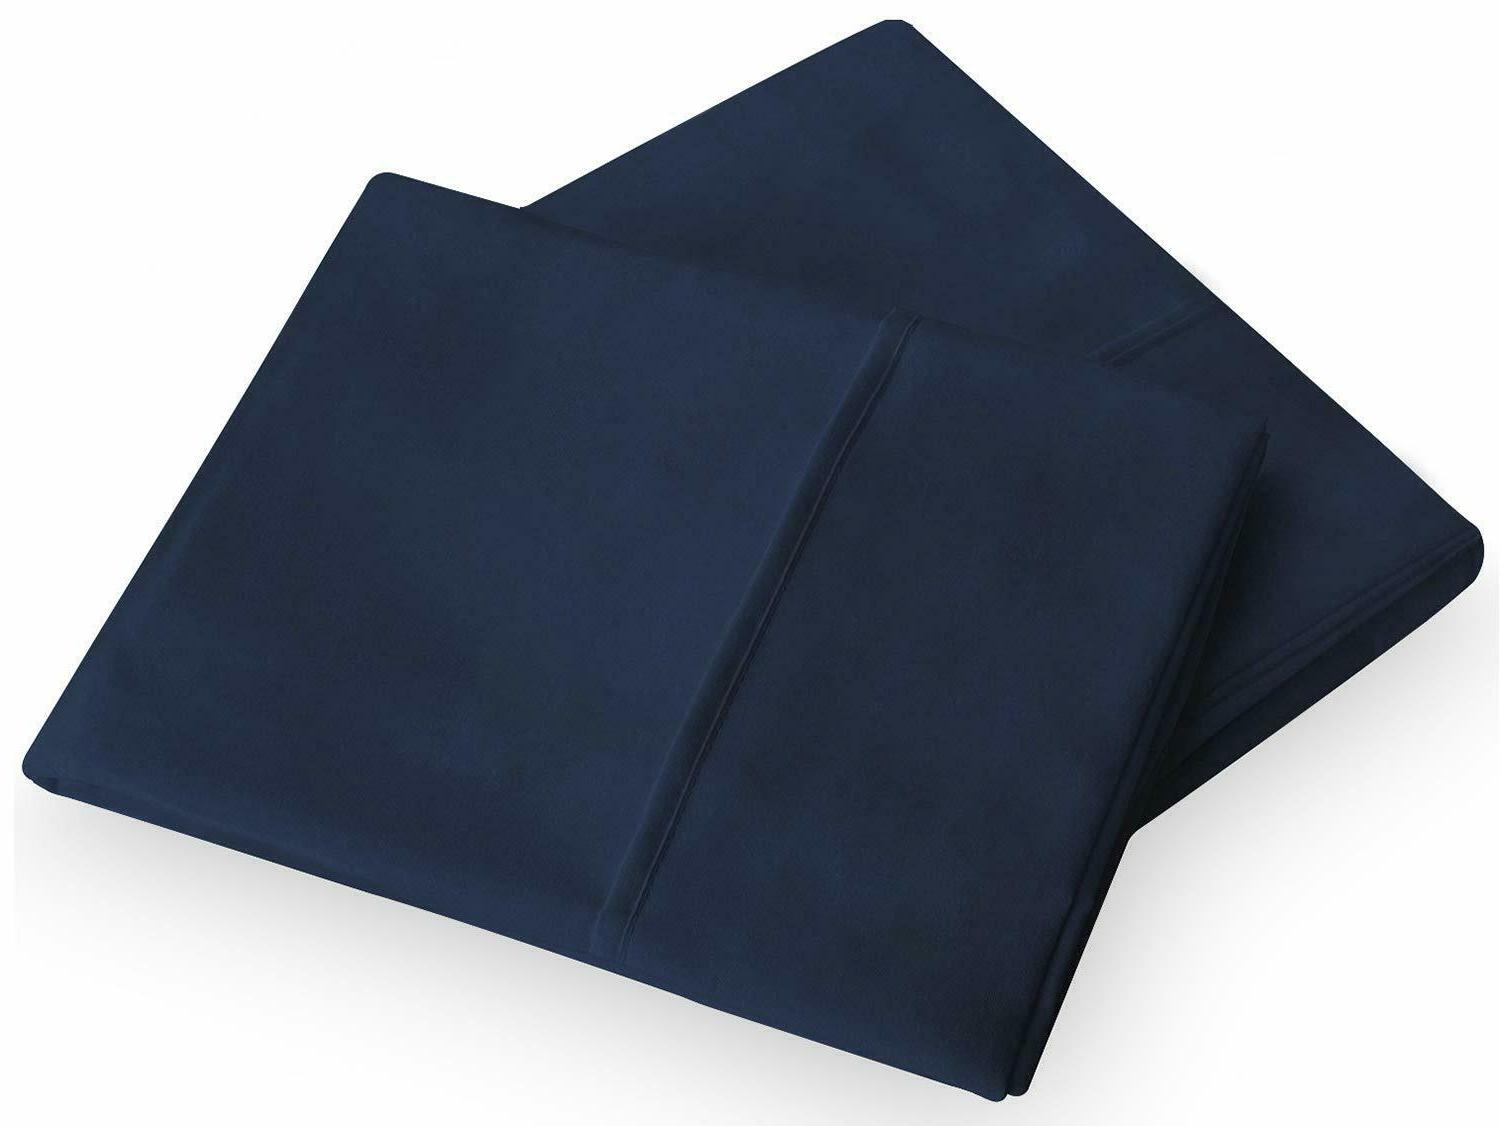 Utopia Pack, -Brushed Microfiber Covers